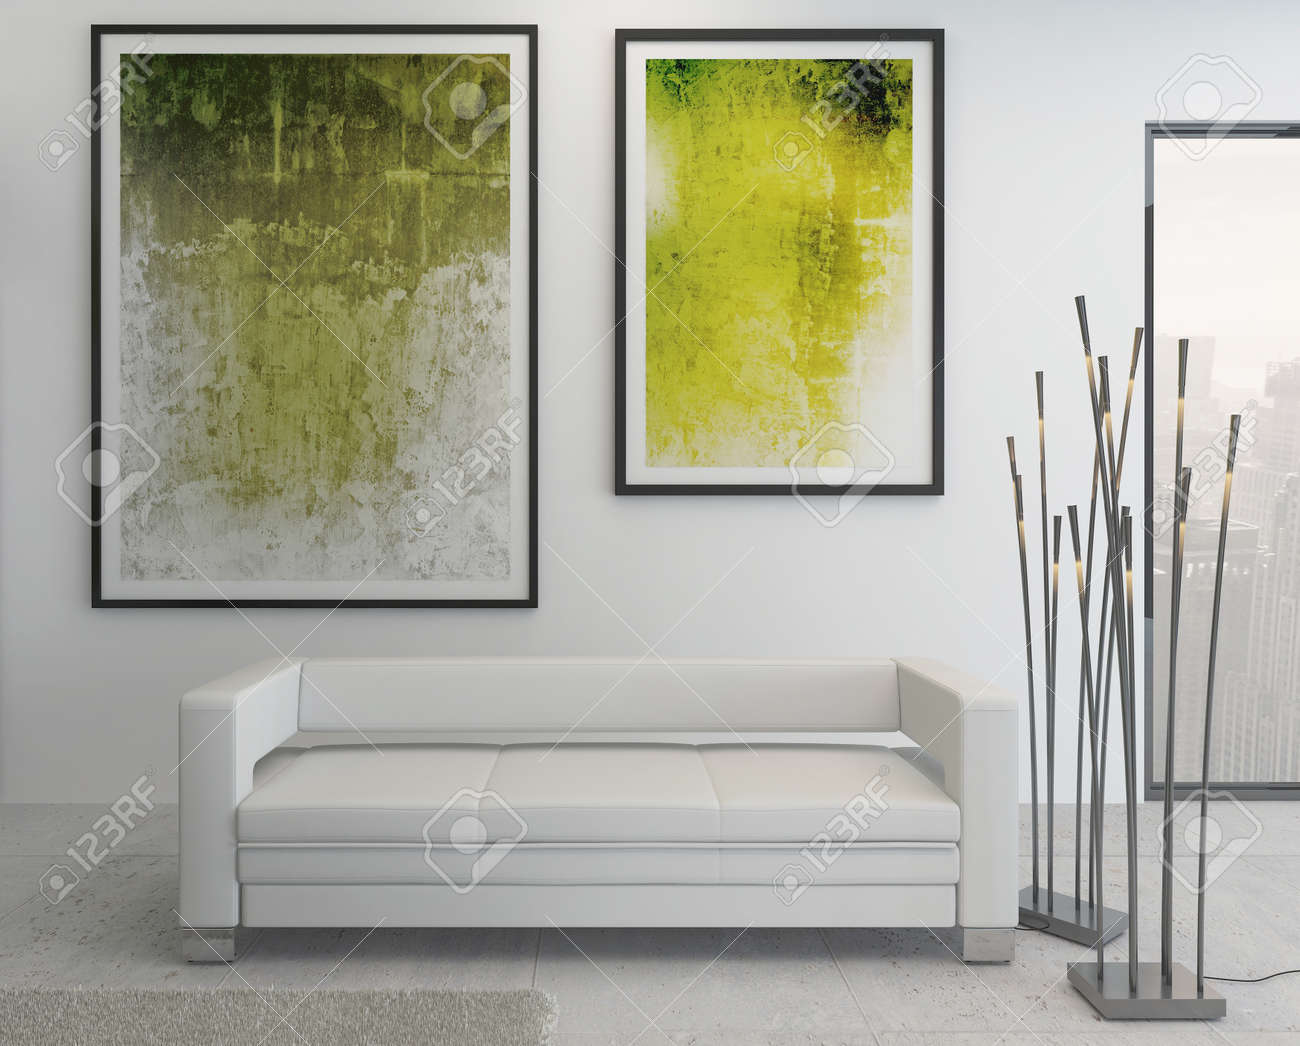 Modern Living Room Interior With Green Paintings On Wall Stock